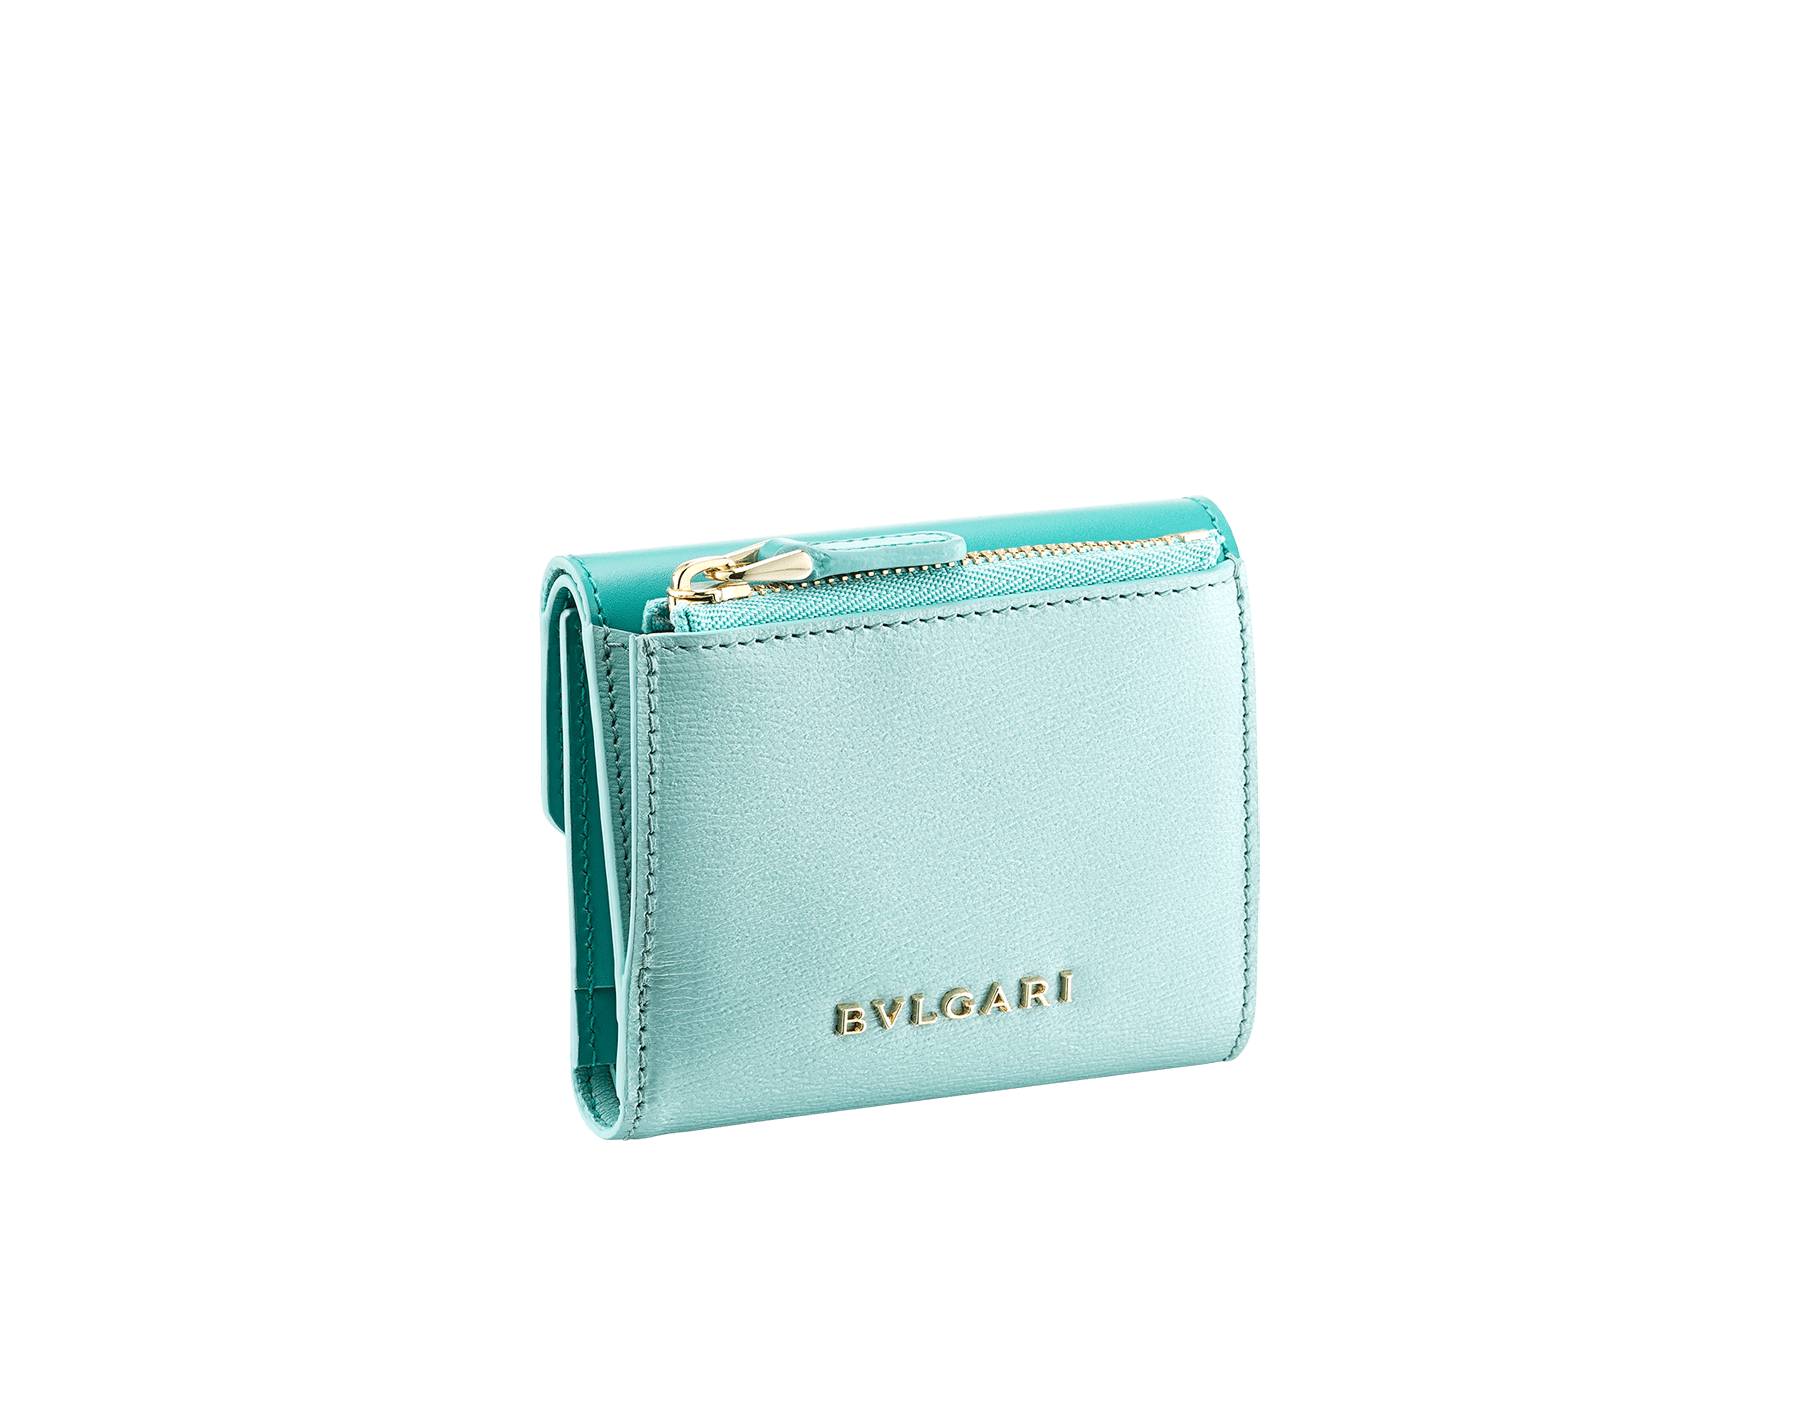 Serpenti Forever compact wallet in arctic jade calf leather and glacier turquoise goatskin. Iconic light gold plated brass snakehead stud closure in glacier turquoise and arctic jade enamel, with black onyx eyes. SEA-SLIMCOMPACT-CLb image 3